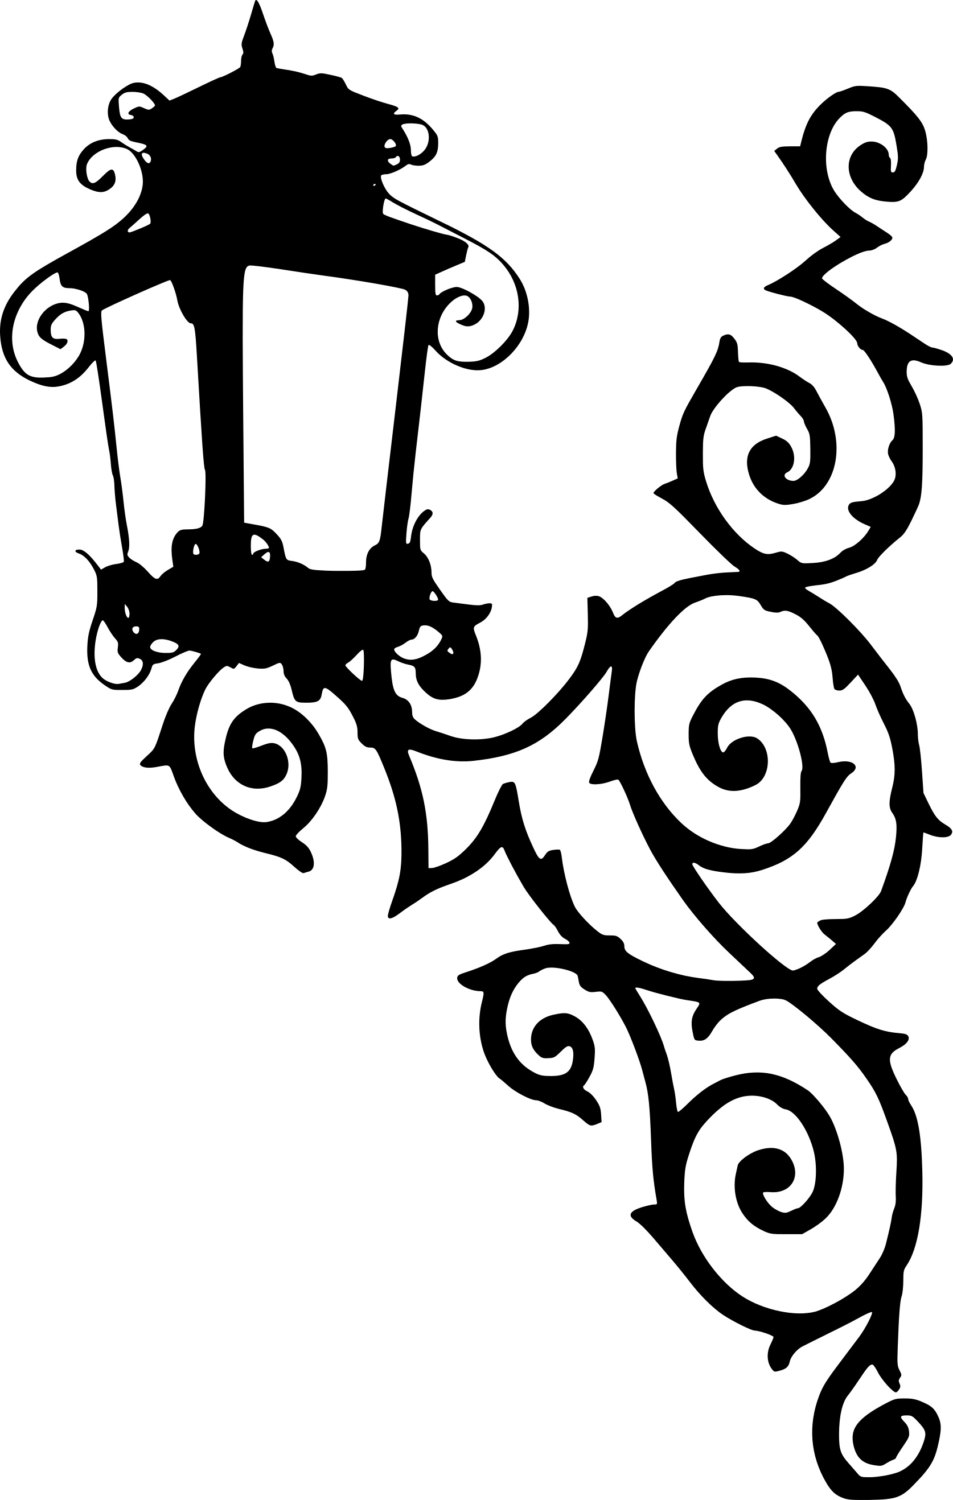 953x1500 Lantern Silhouette Clipart Street Light Lamps